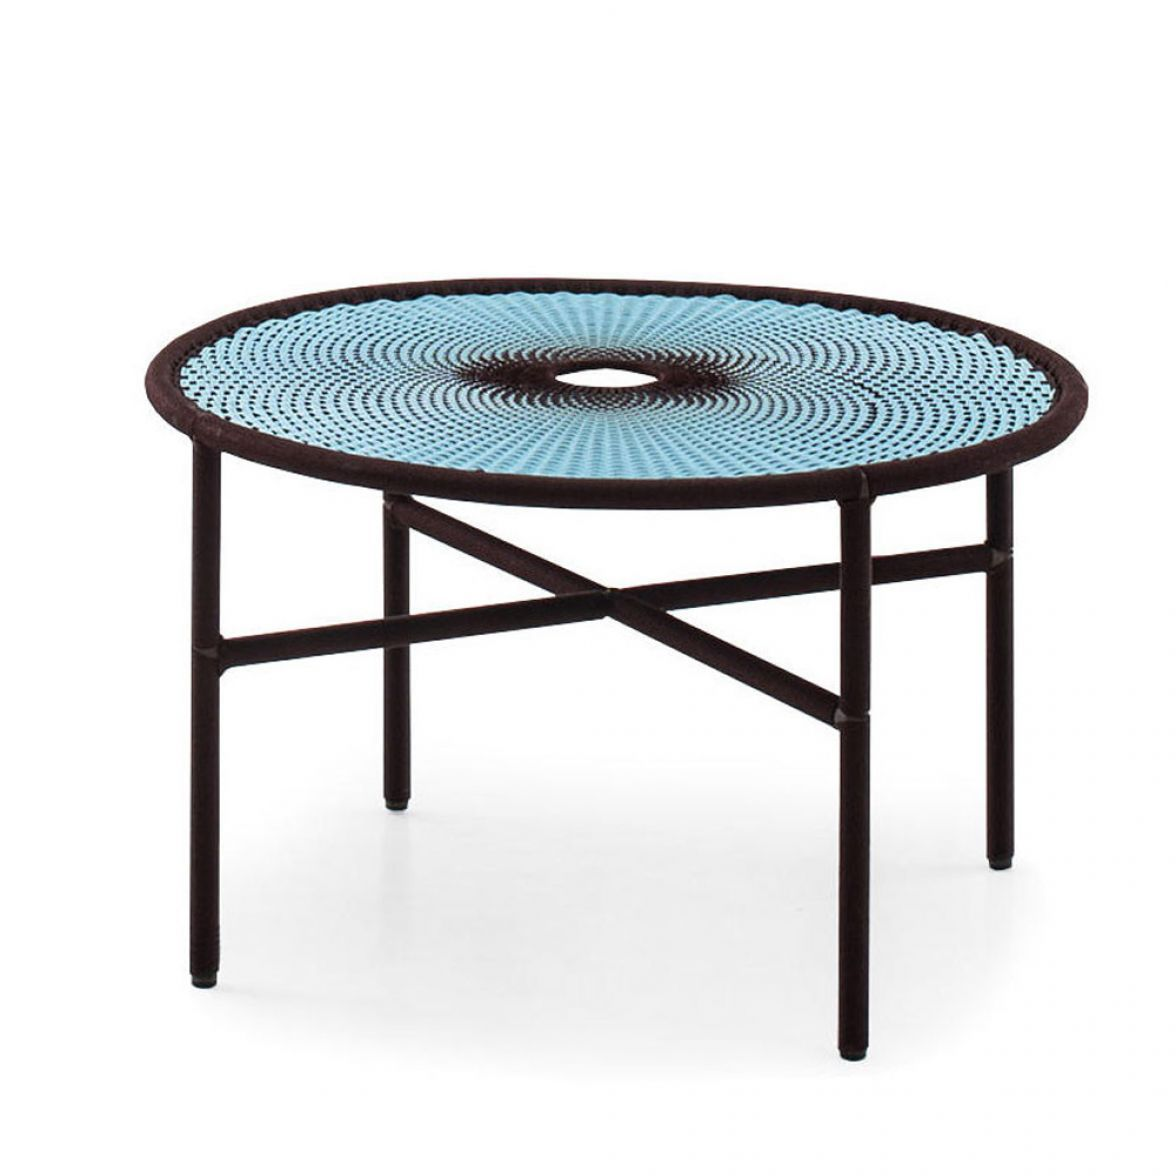 Banjooli low table